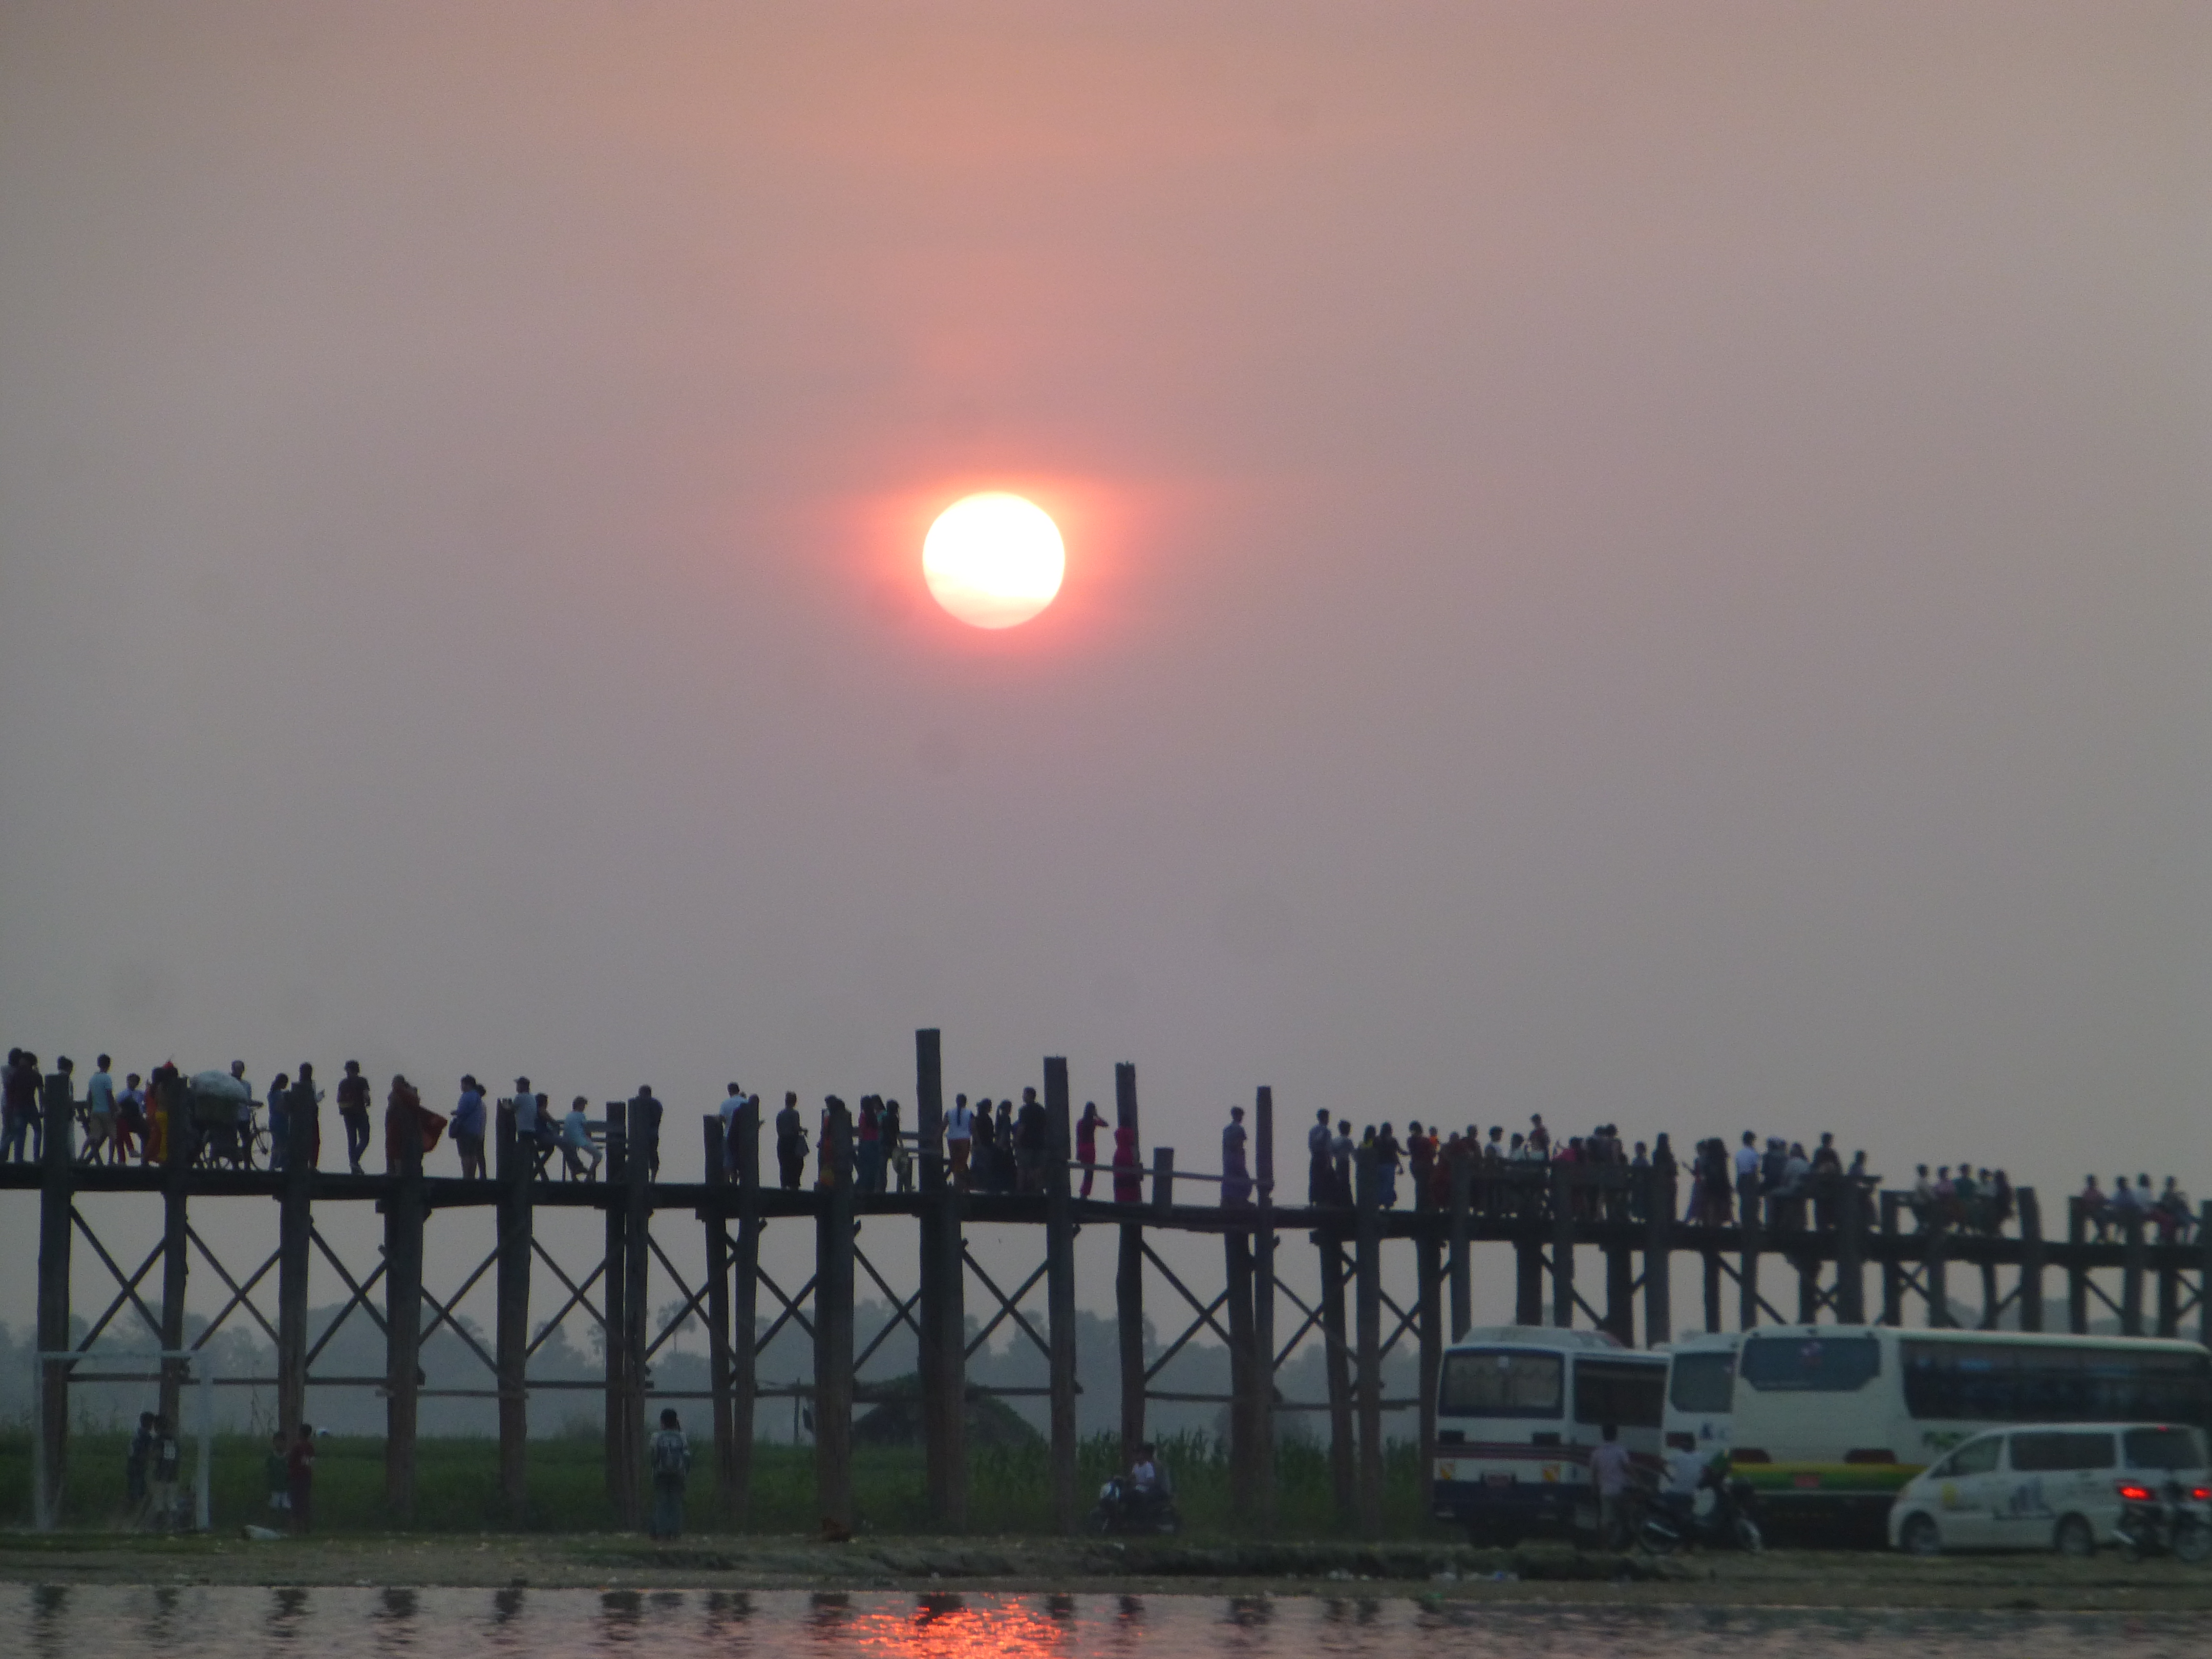 U Bein Bridge Myanmar 1.2-km bridge was built around 1850 & is believed to be the oldest & (once) longest teakwood bridge in the world.